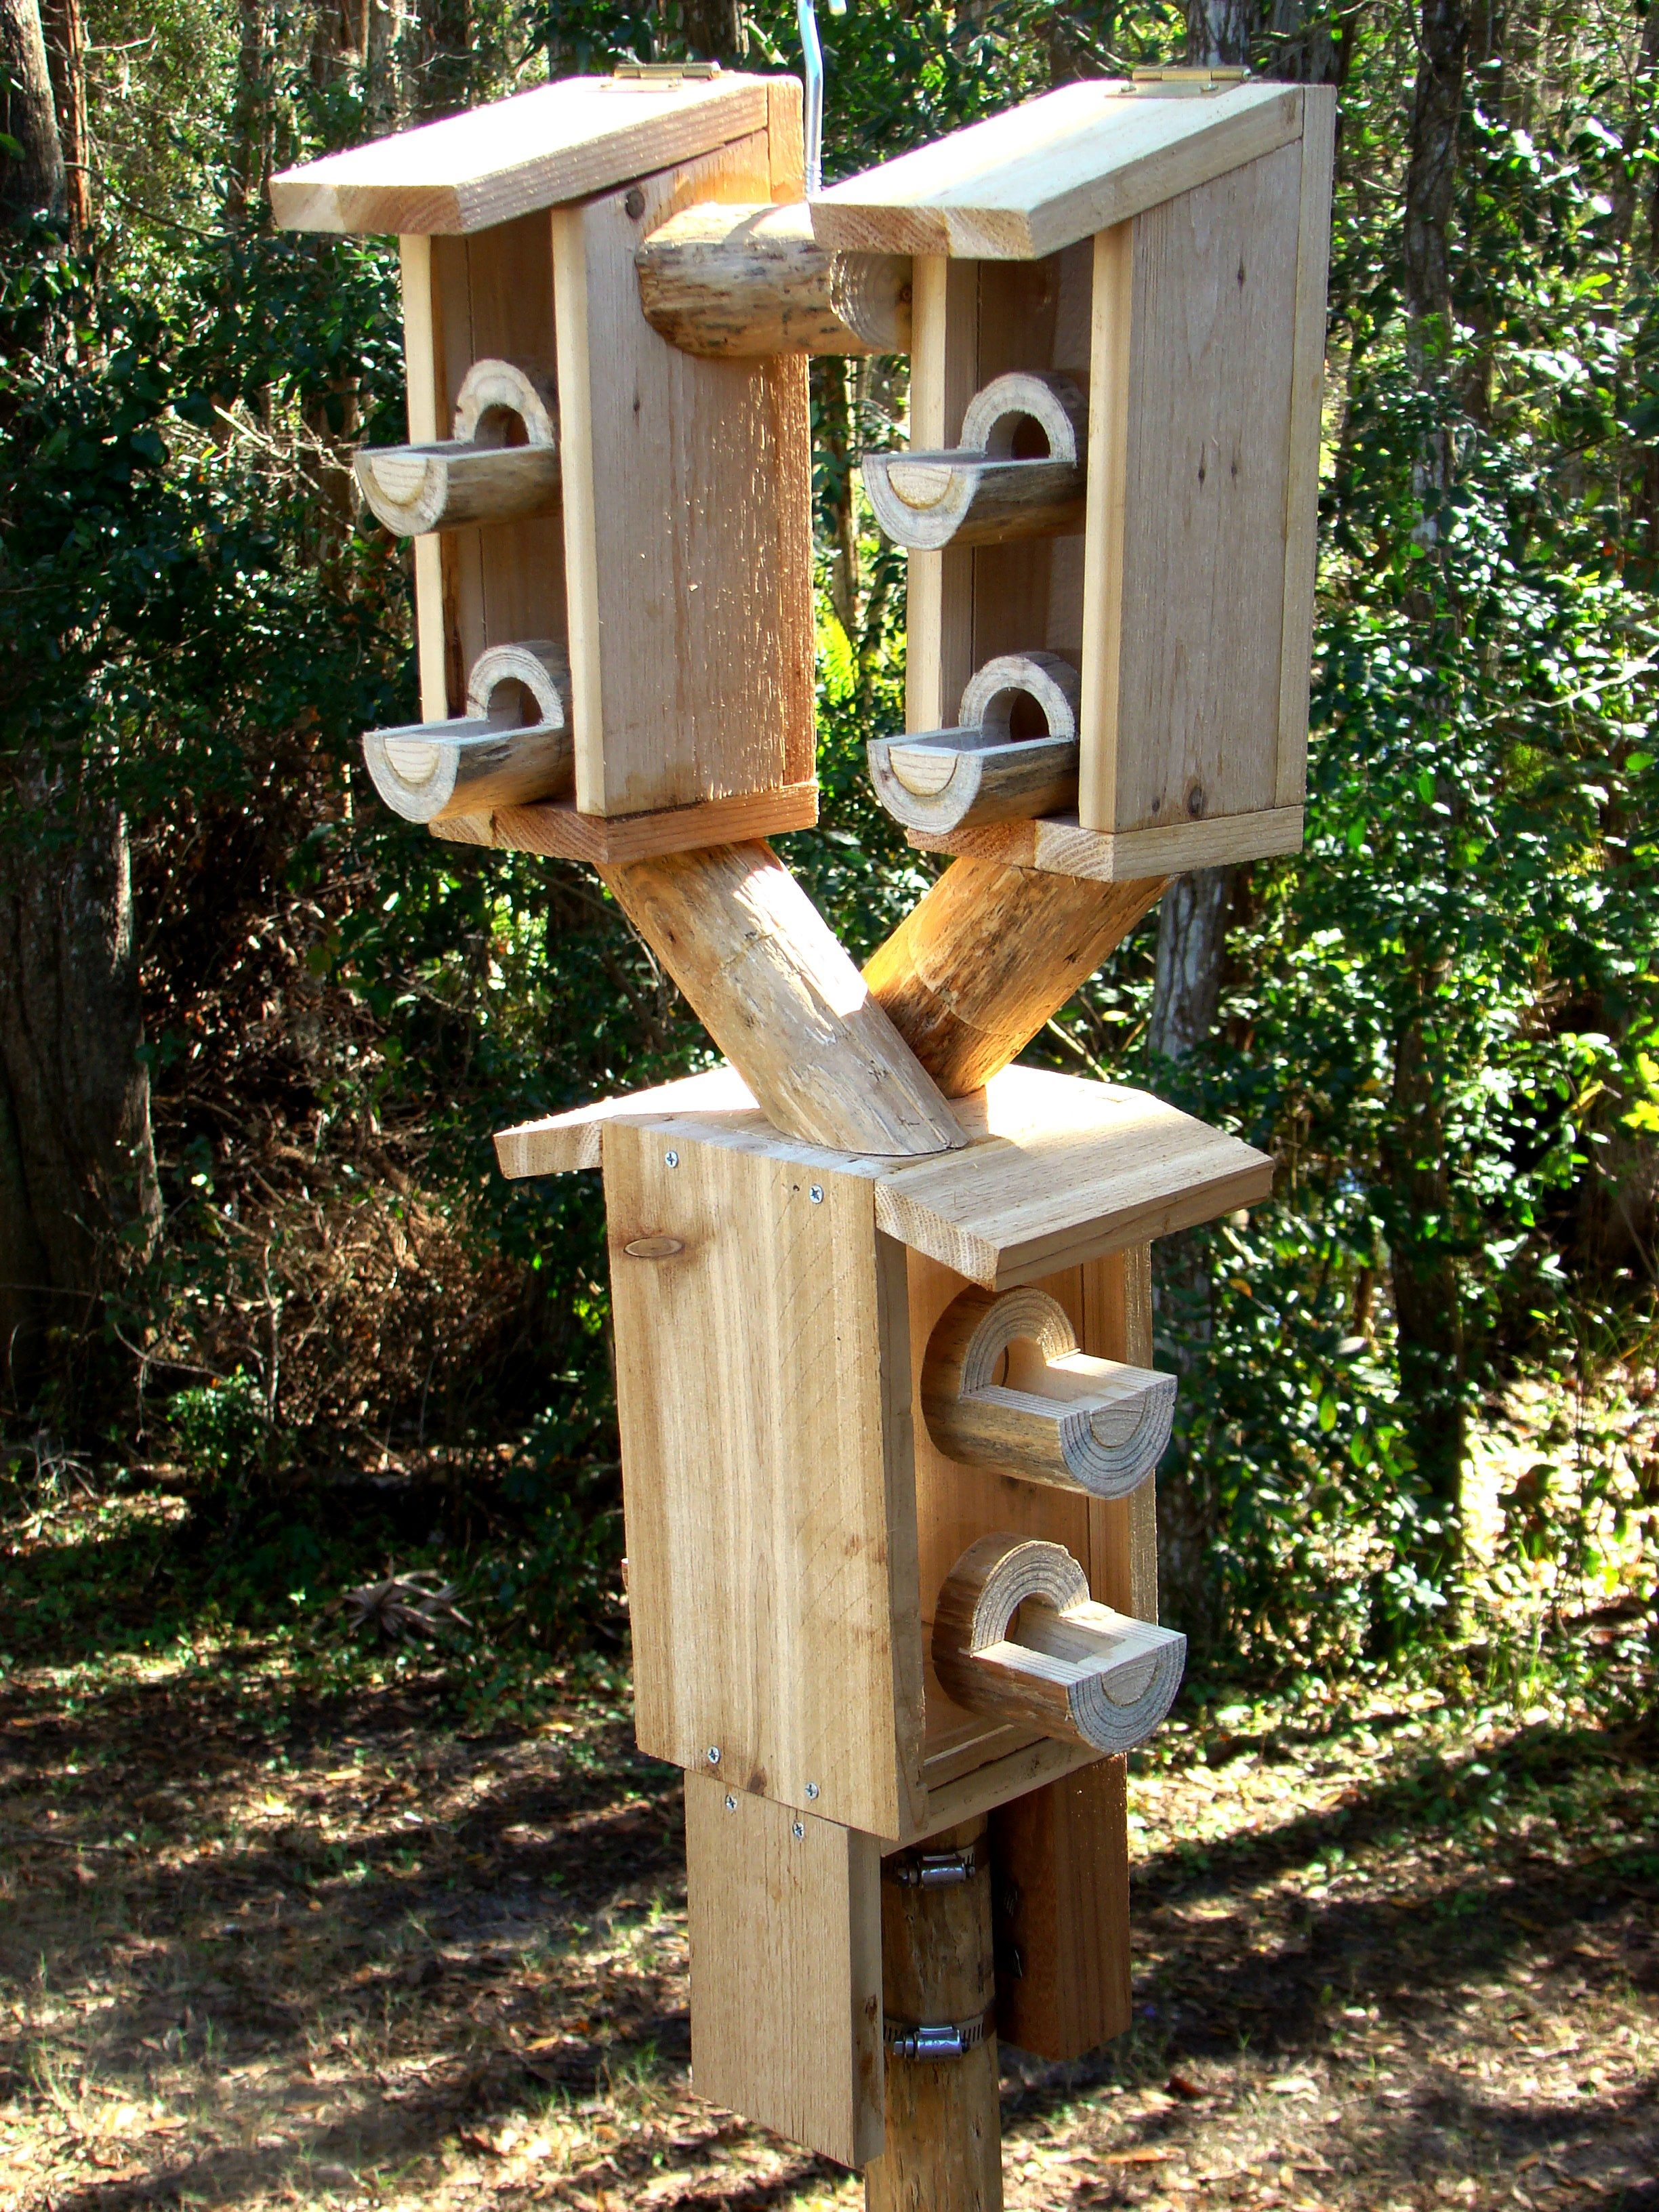 Wooden Bird Feeders On A Pole